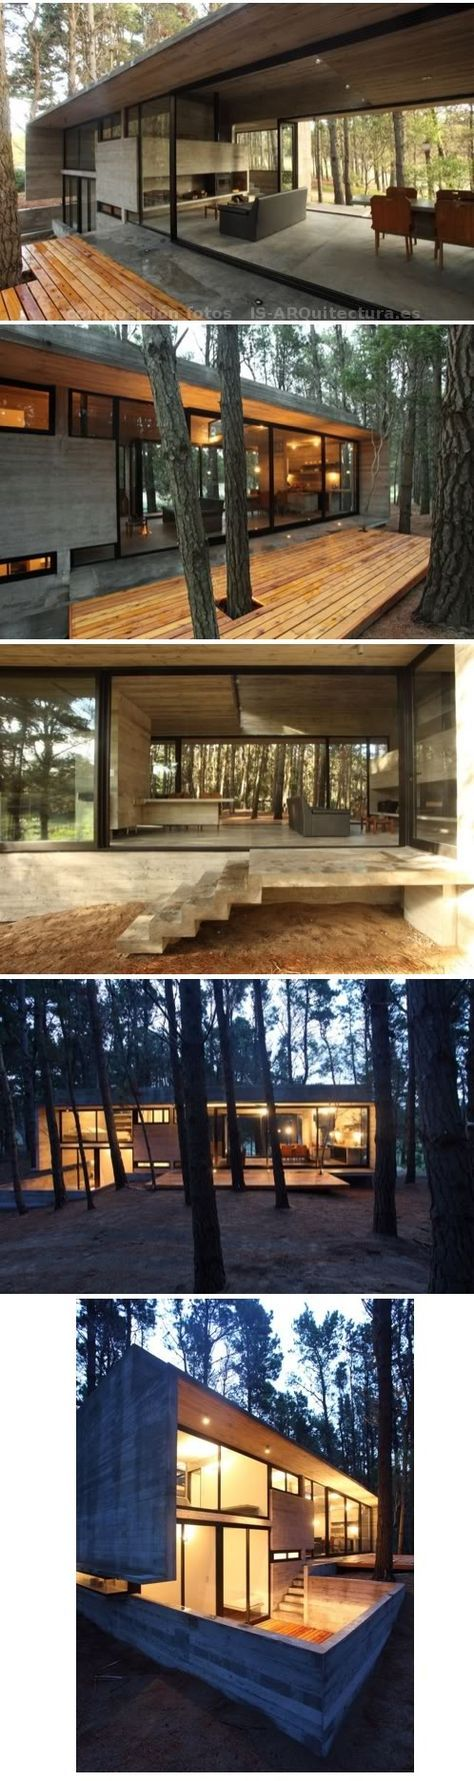 Container House - casa-hormigon_visto-bosque-2 - Who Else Wants Simple Step-By-Step Plans To Design And Build A Container Home From Scratch?